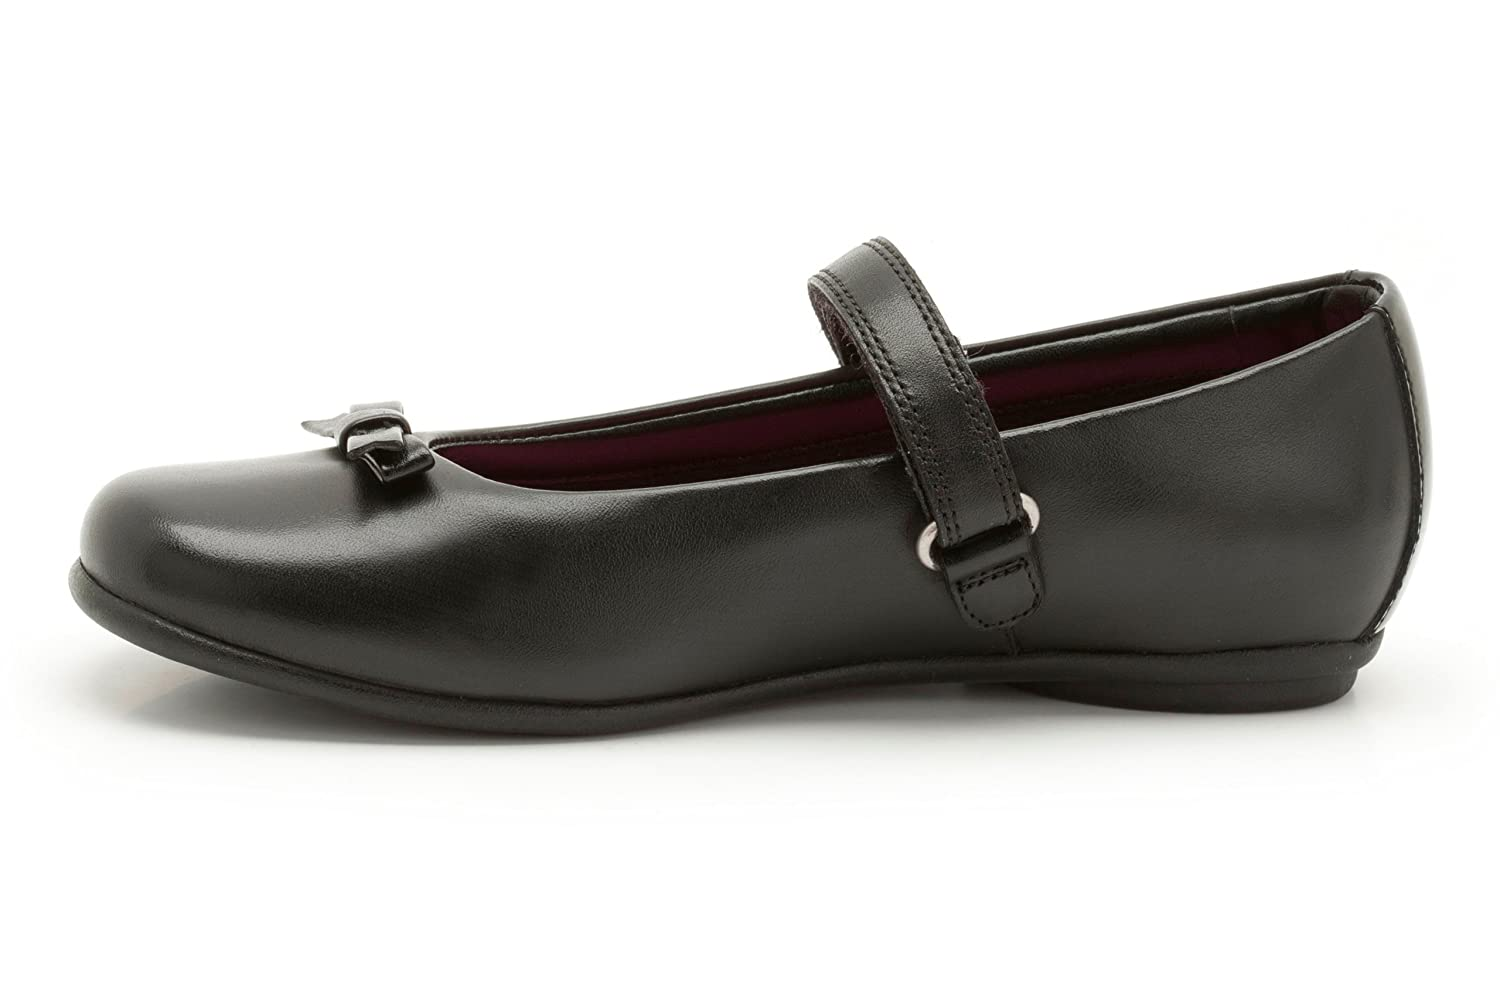 Clarks Girls School Daisy Meadow Leather Shoes In Black Narrow Fit Size  7.5: Amazon.co.uk: Shoes & Bags